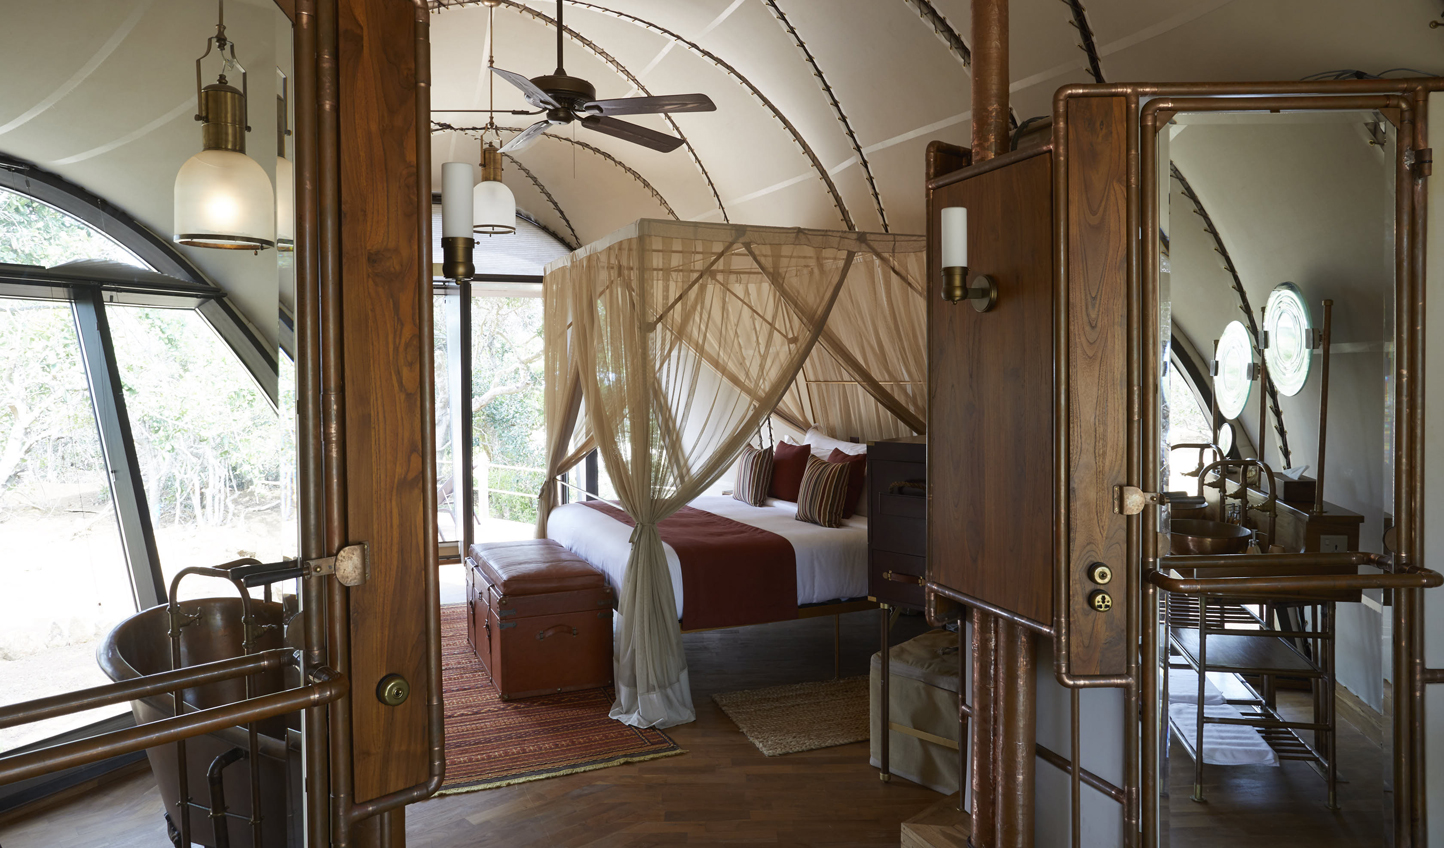 A beautiful space to cocoon yourself in